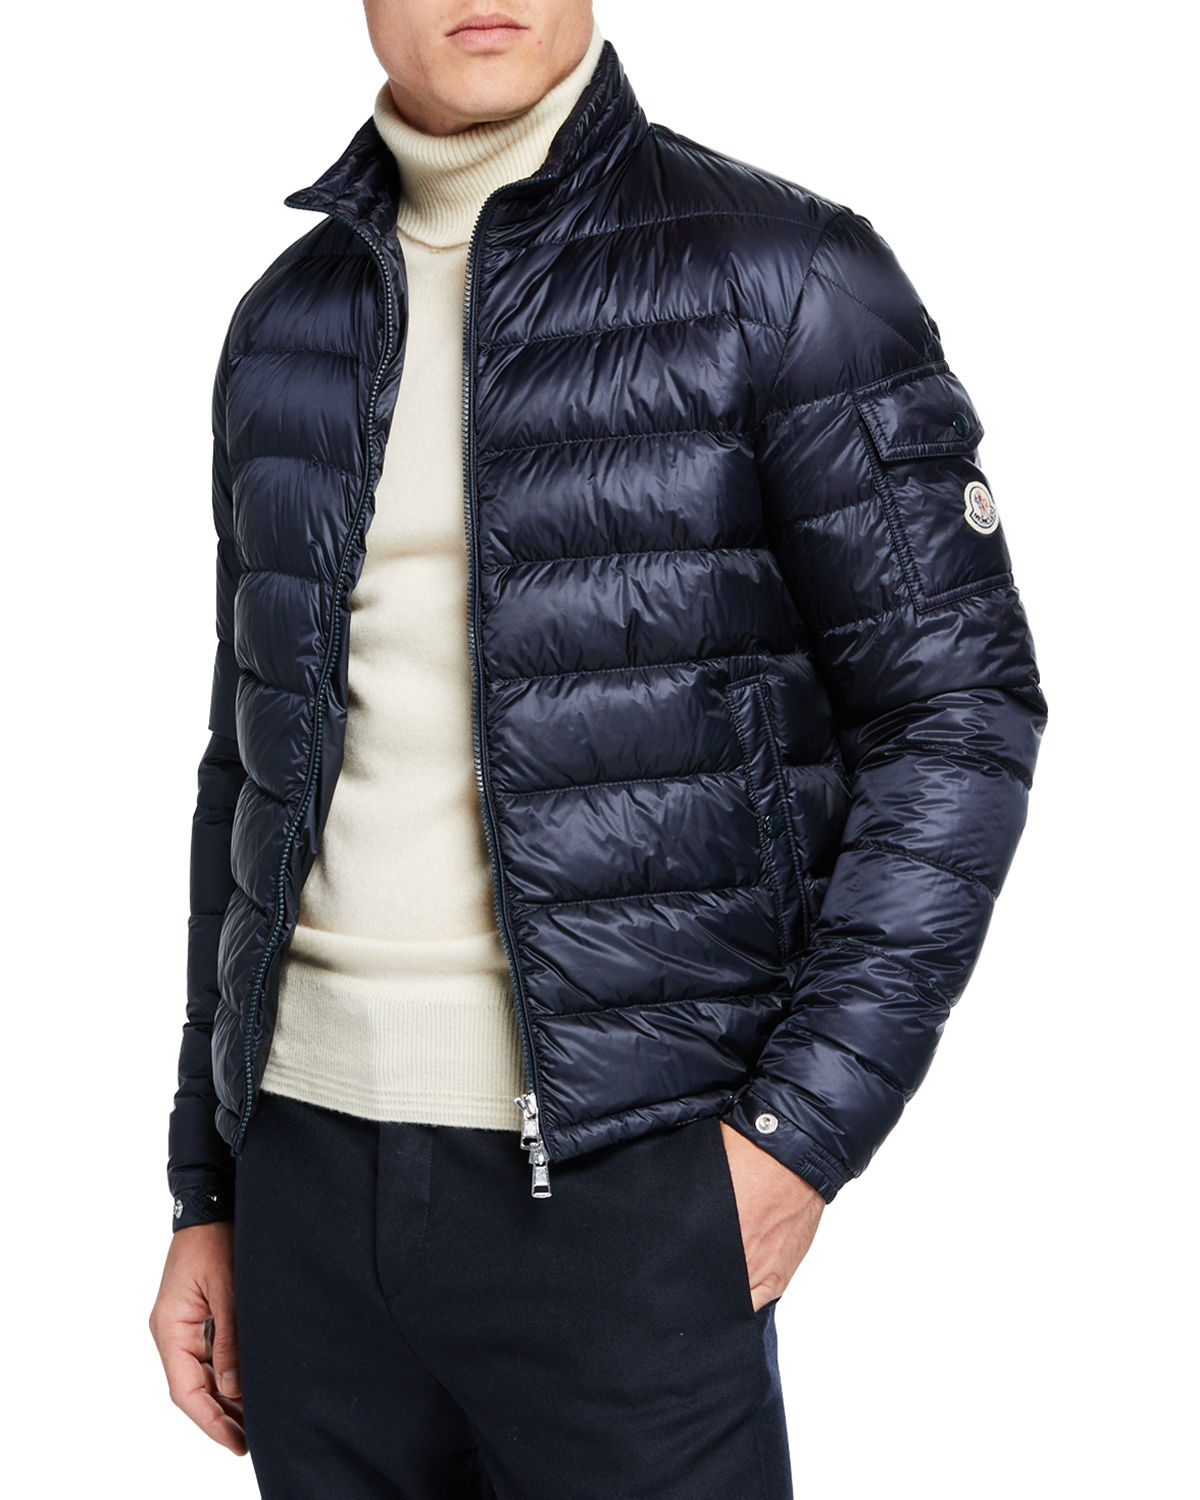 a01b0c019 Men's Lambot Puffer Jacket